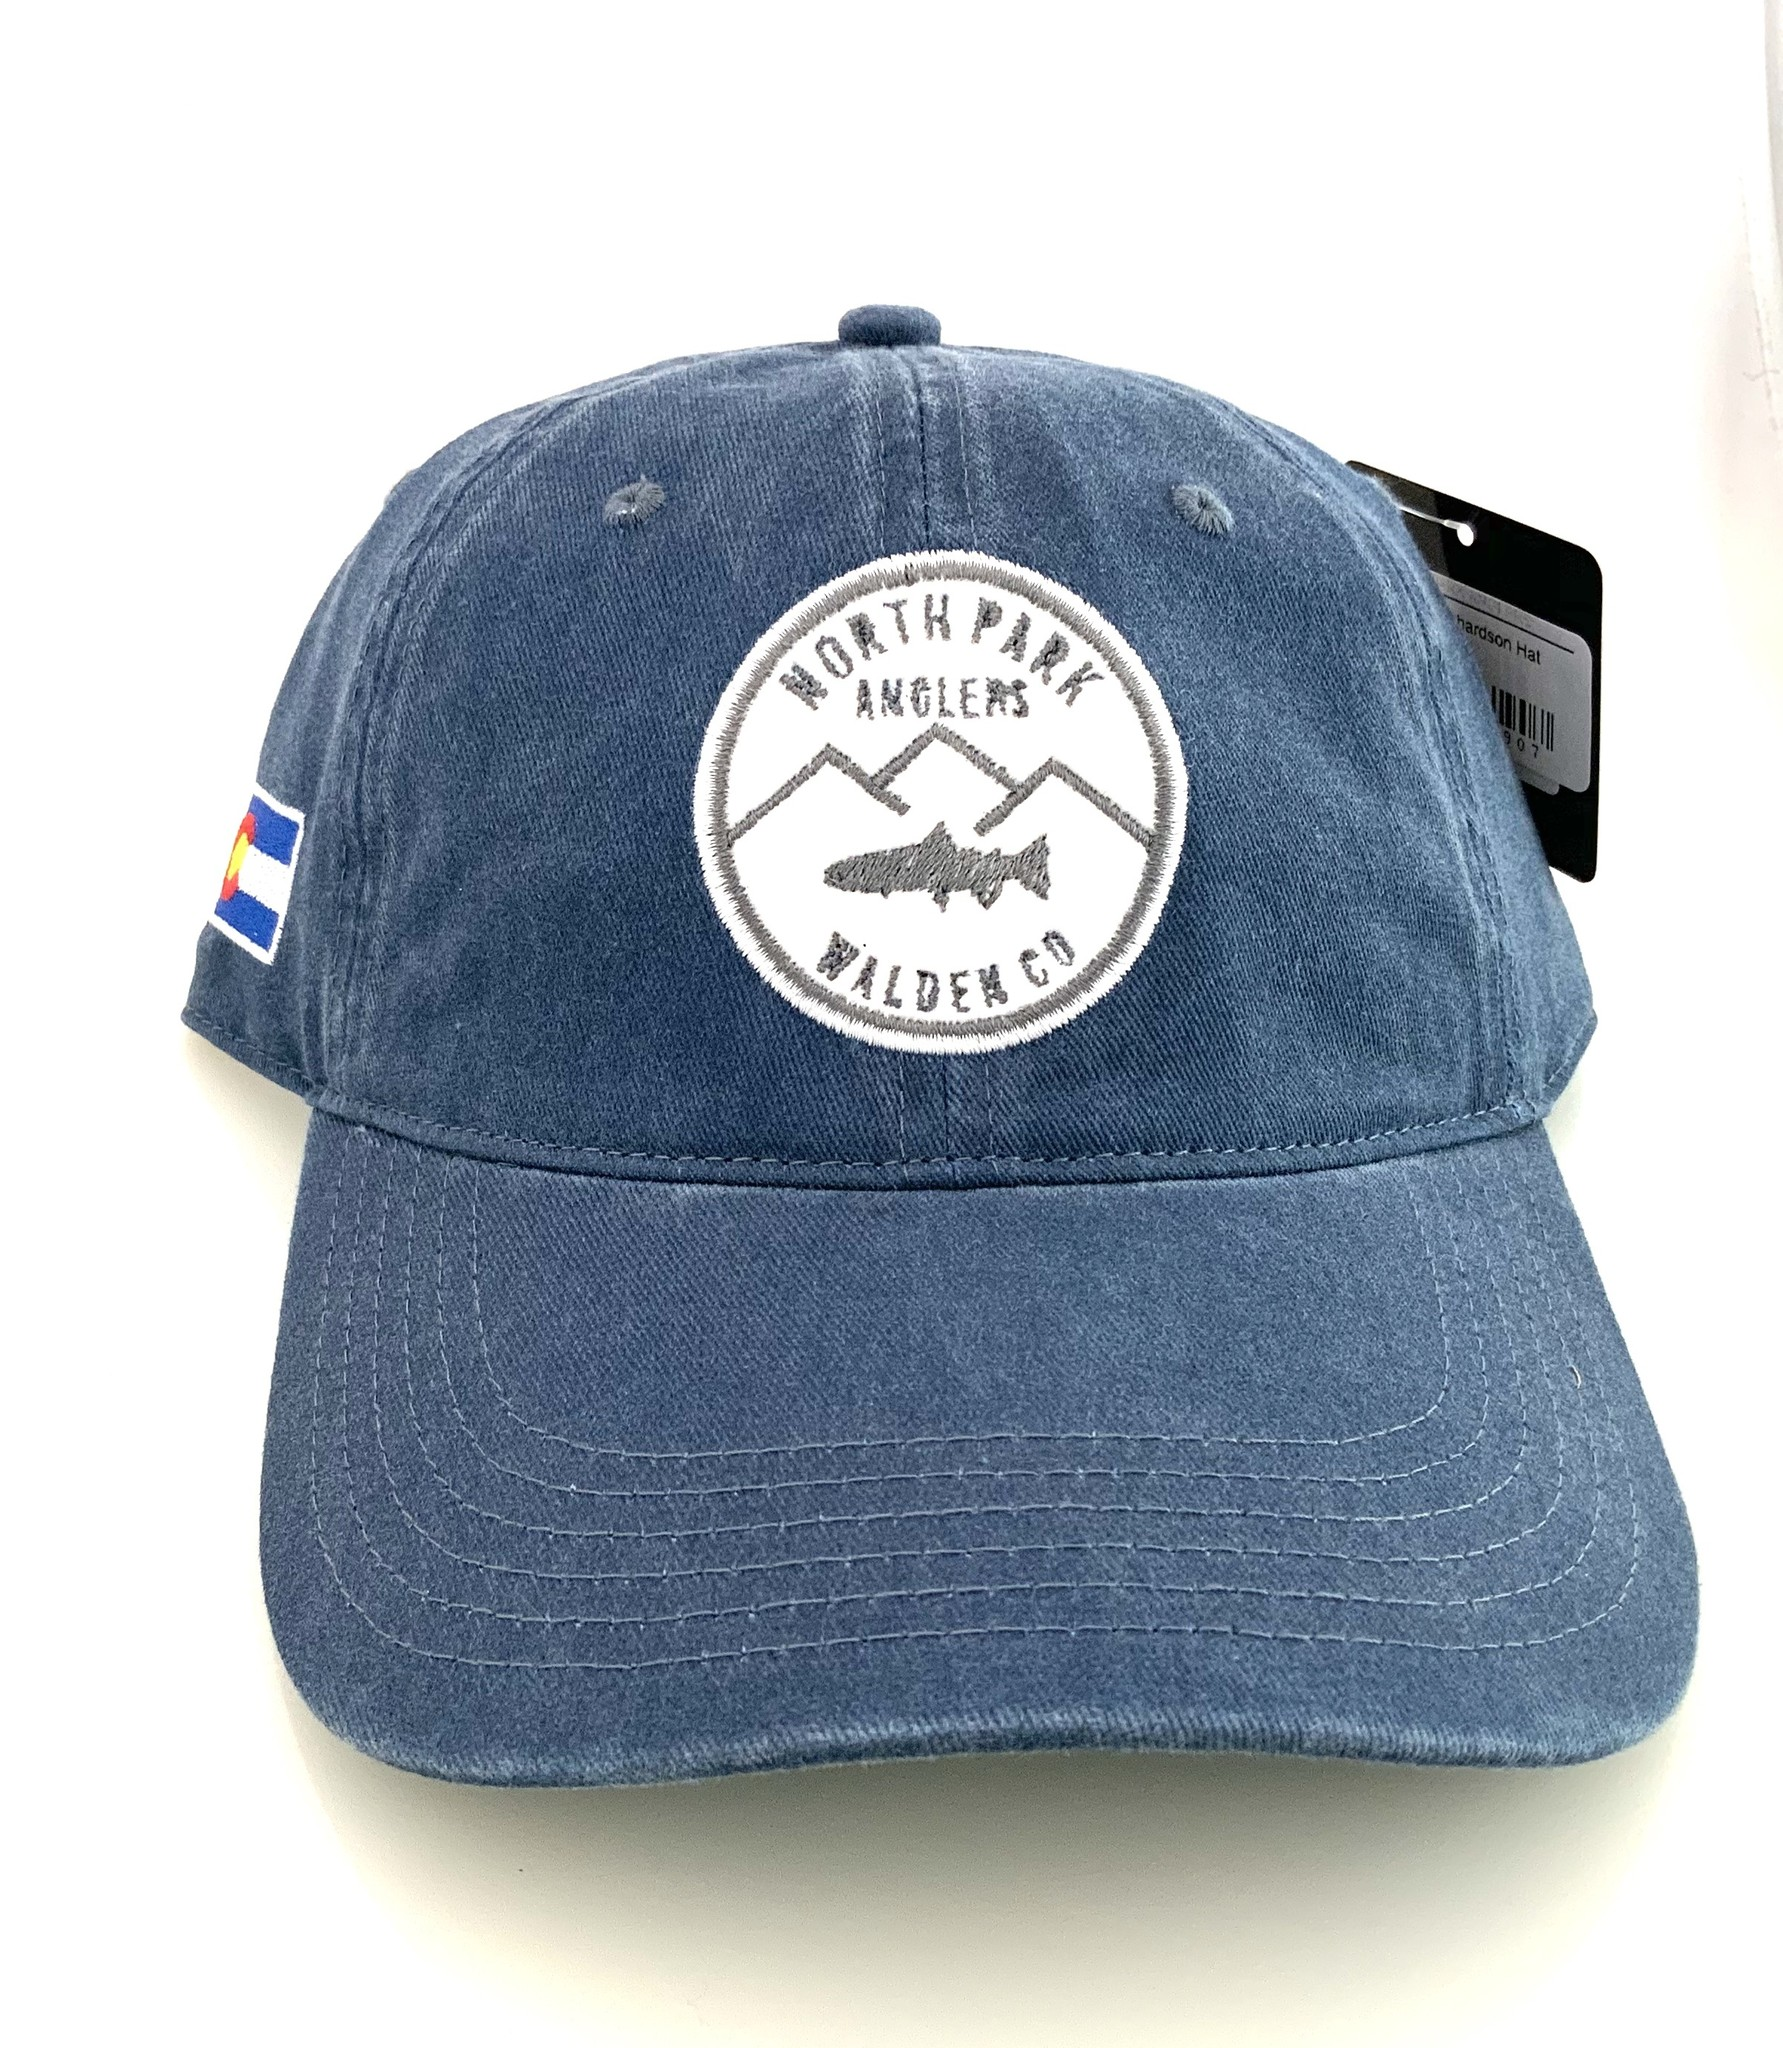 Richardson NPA Hat Trout/ Mountain Patch Hats